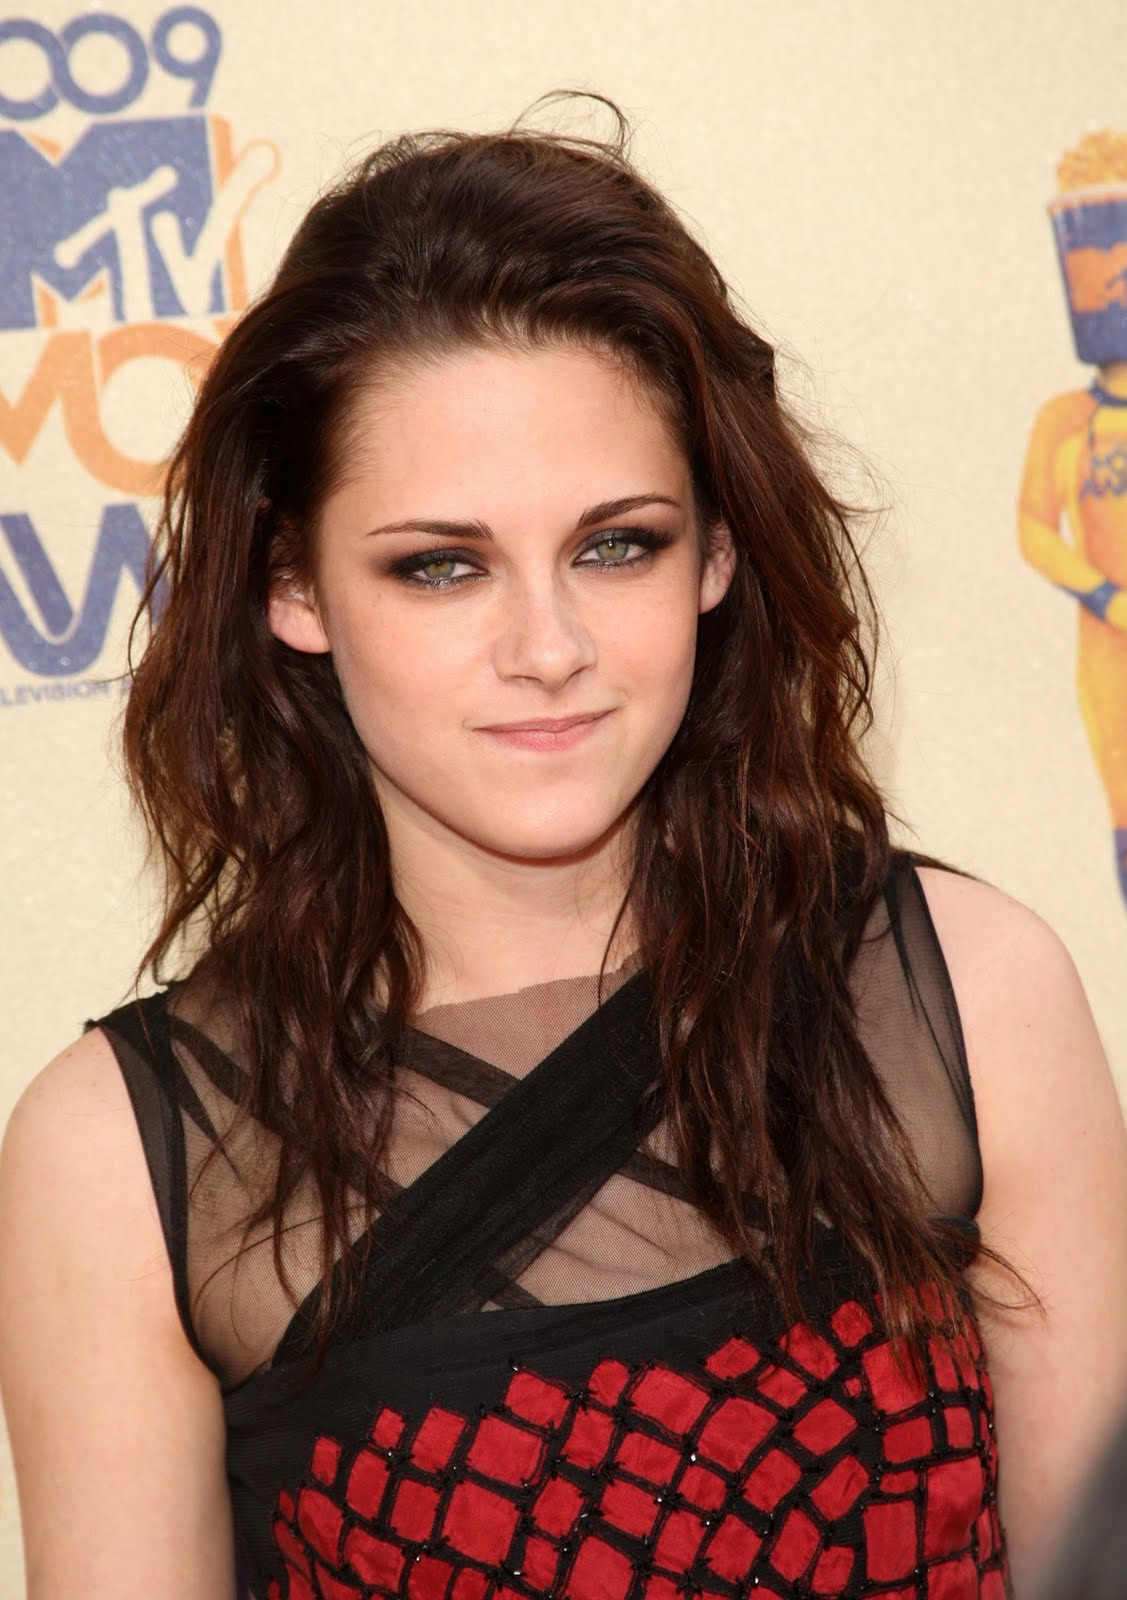 http://2.bp.blogspot.com/-foQoeylBr9s/TdhCz4v9rsI/AAAAAAAAACk/mV6Jr11u8gQ/s1600/287_67087_Celebutopia-Kristen_Stewart_arrives_at_the_2009_MTV_Movie_Awards-04_122_1158lo.jpg